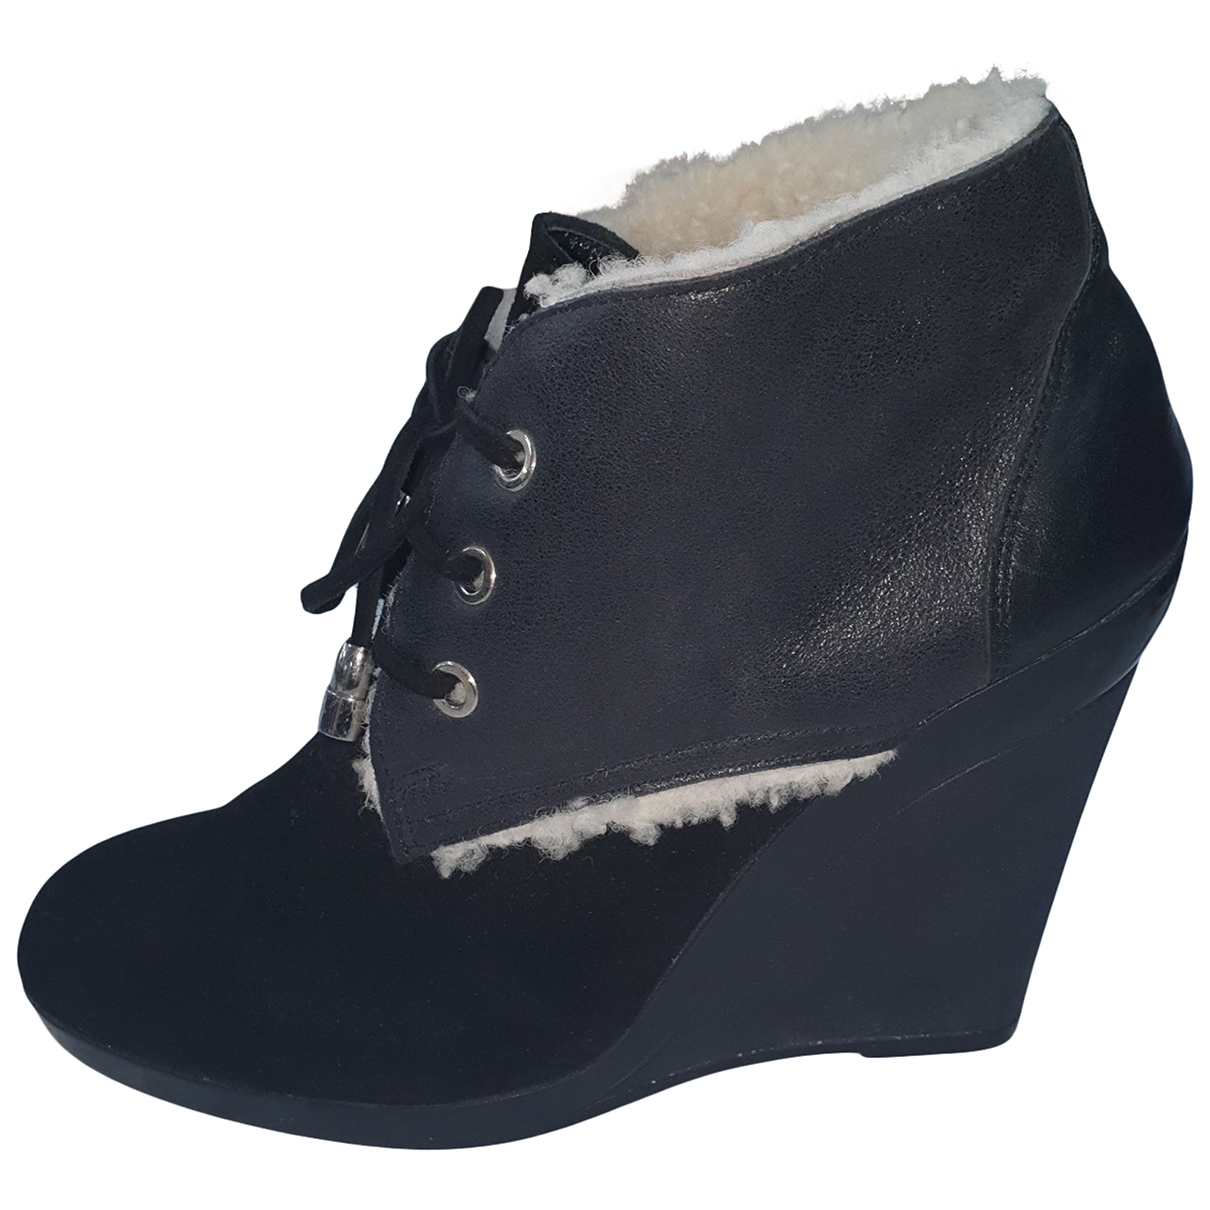 Hogan \N Black Leather Ankle boots for Women 39 EU